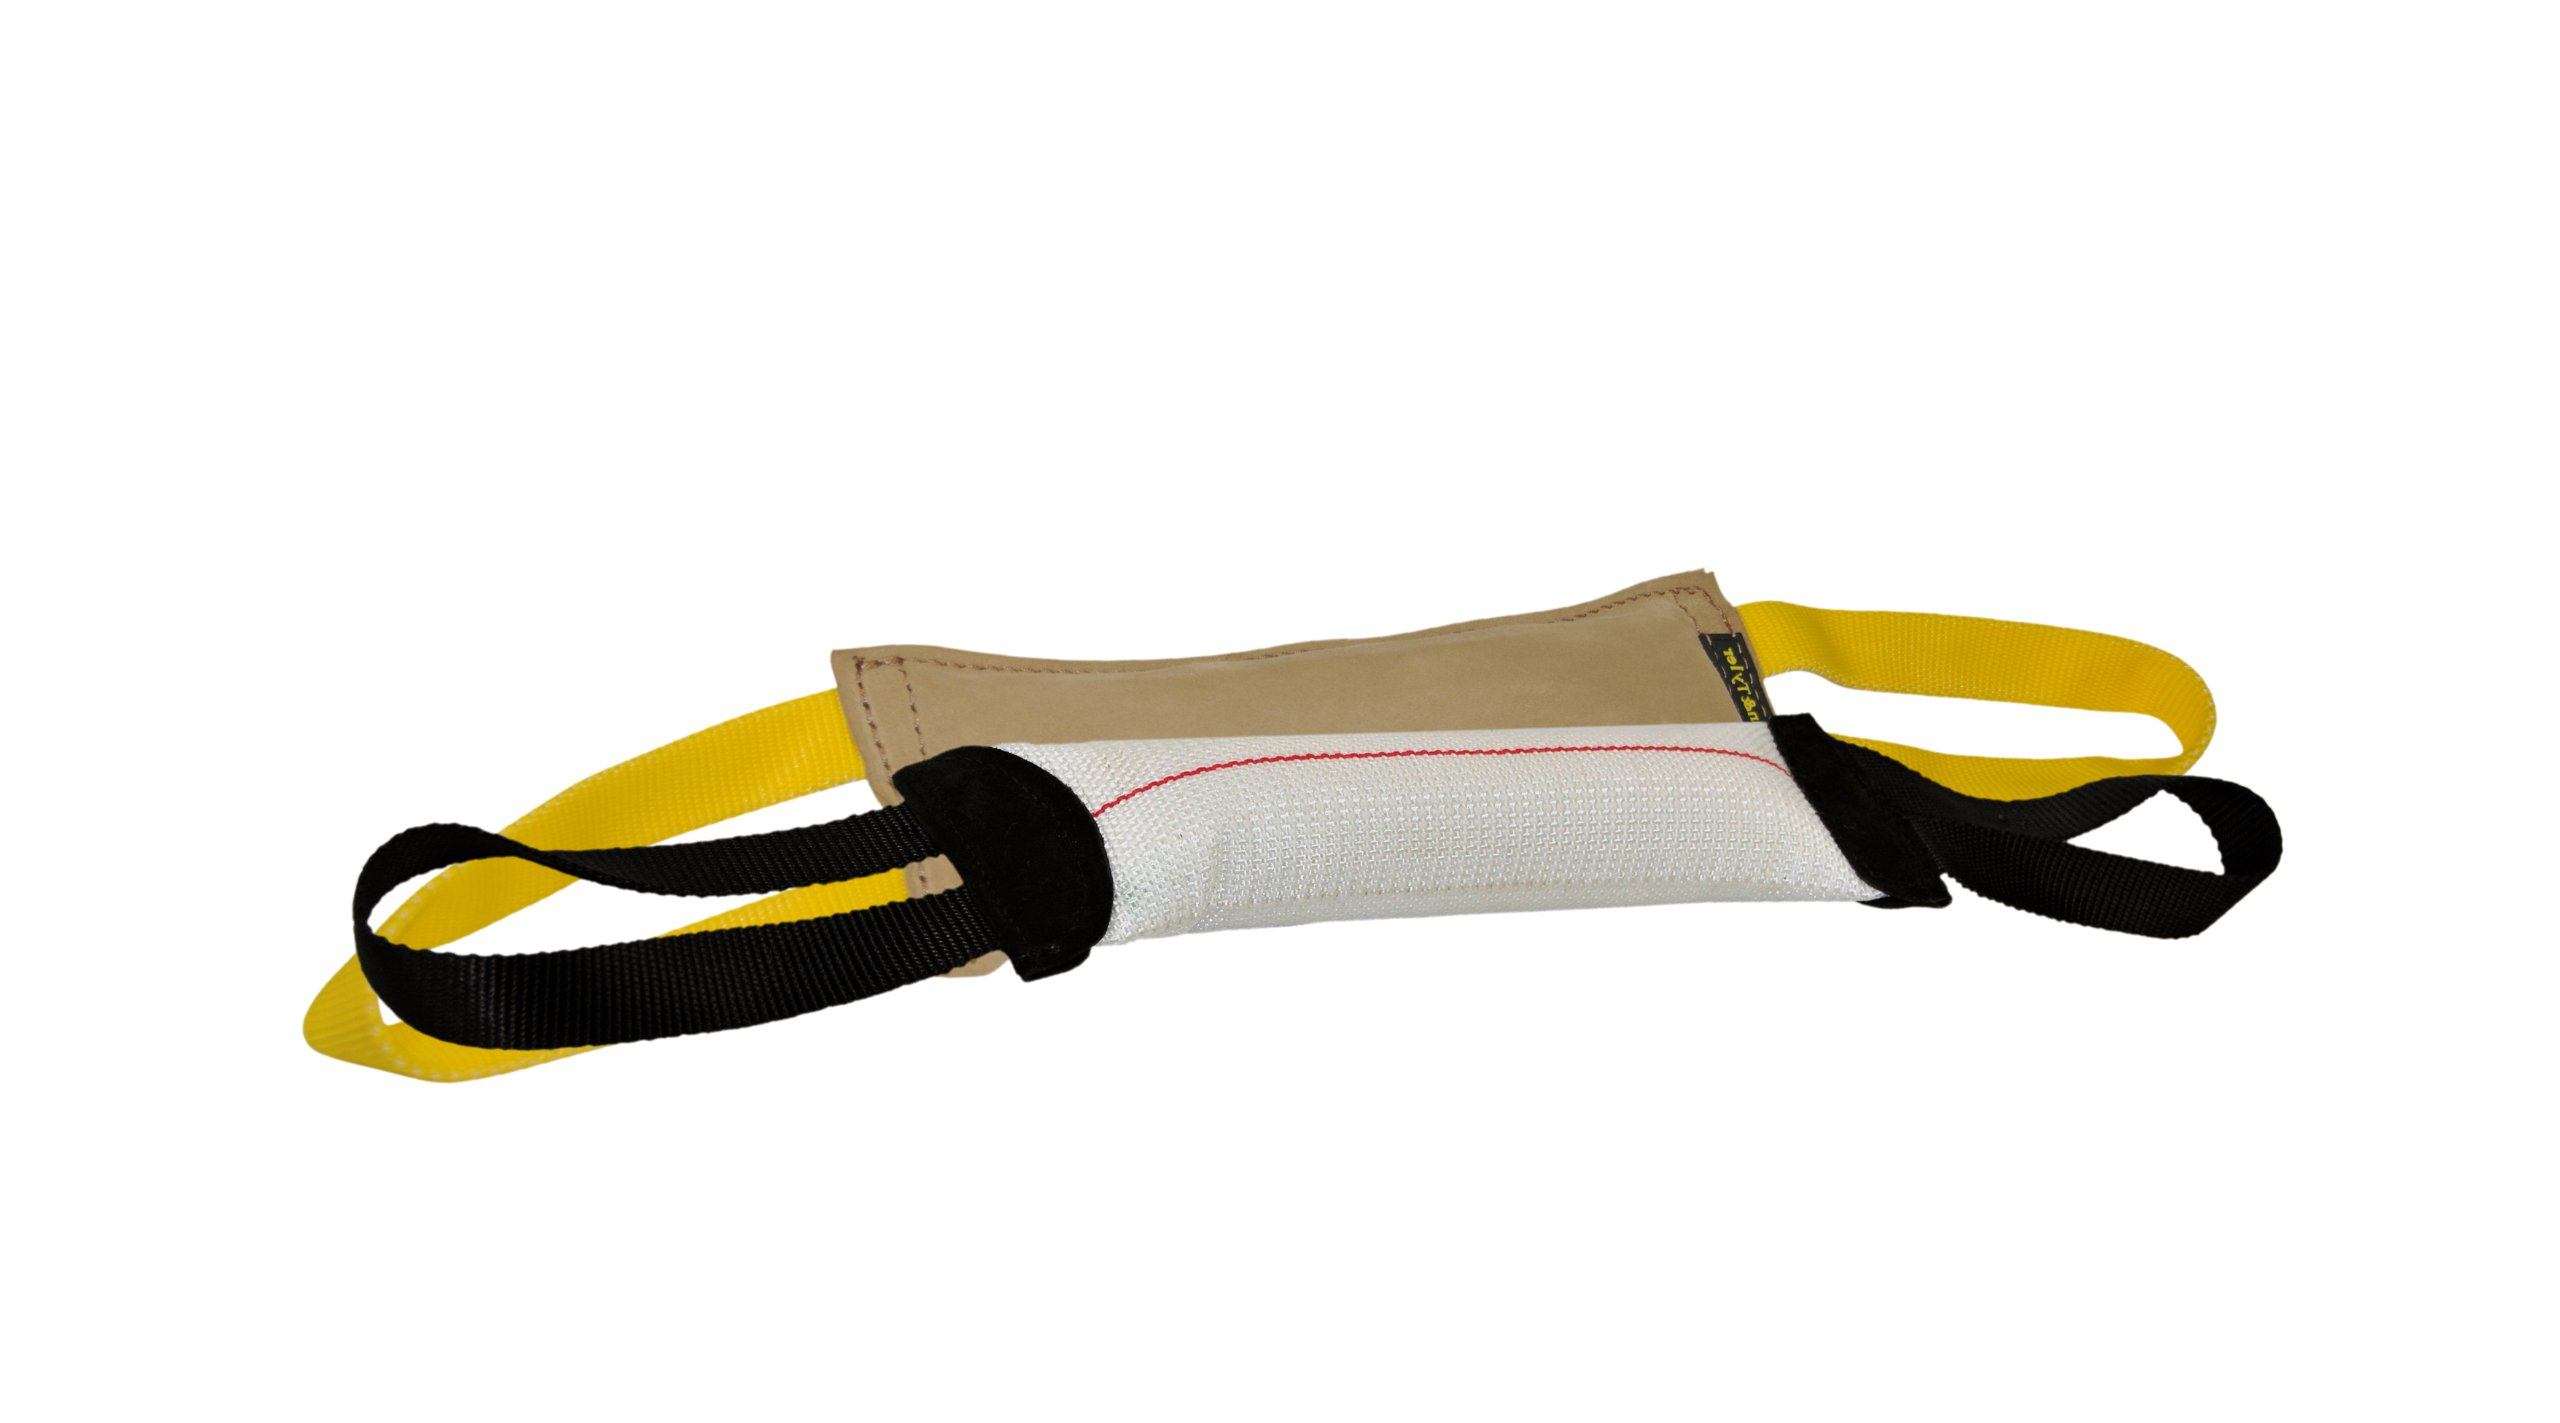 Dean & Tyler Bundle of 2 Tugs for Pets, Leather and Fire Hose, 12-Inch by 4-Inch